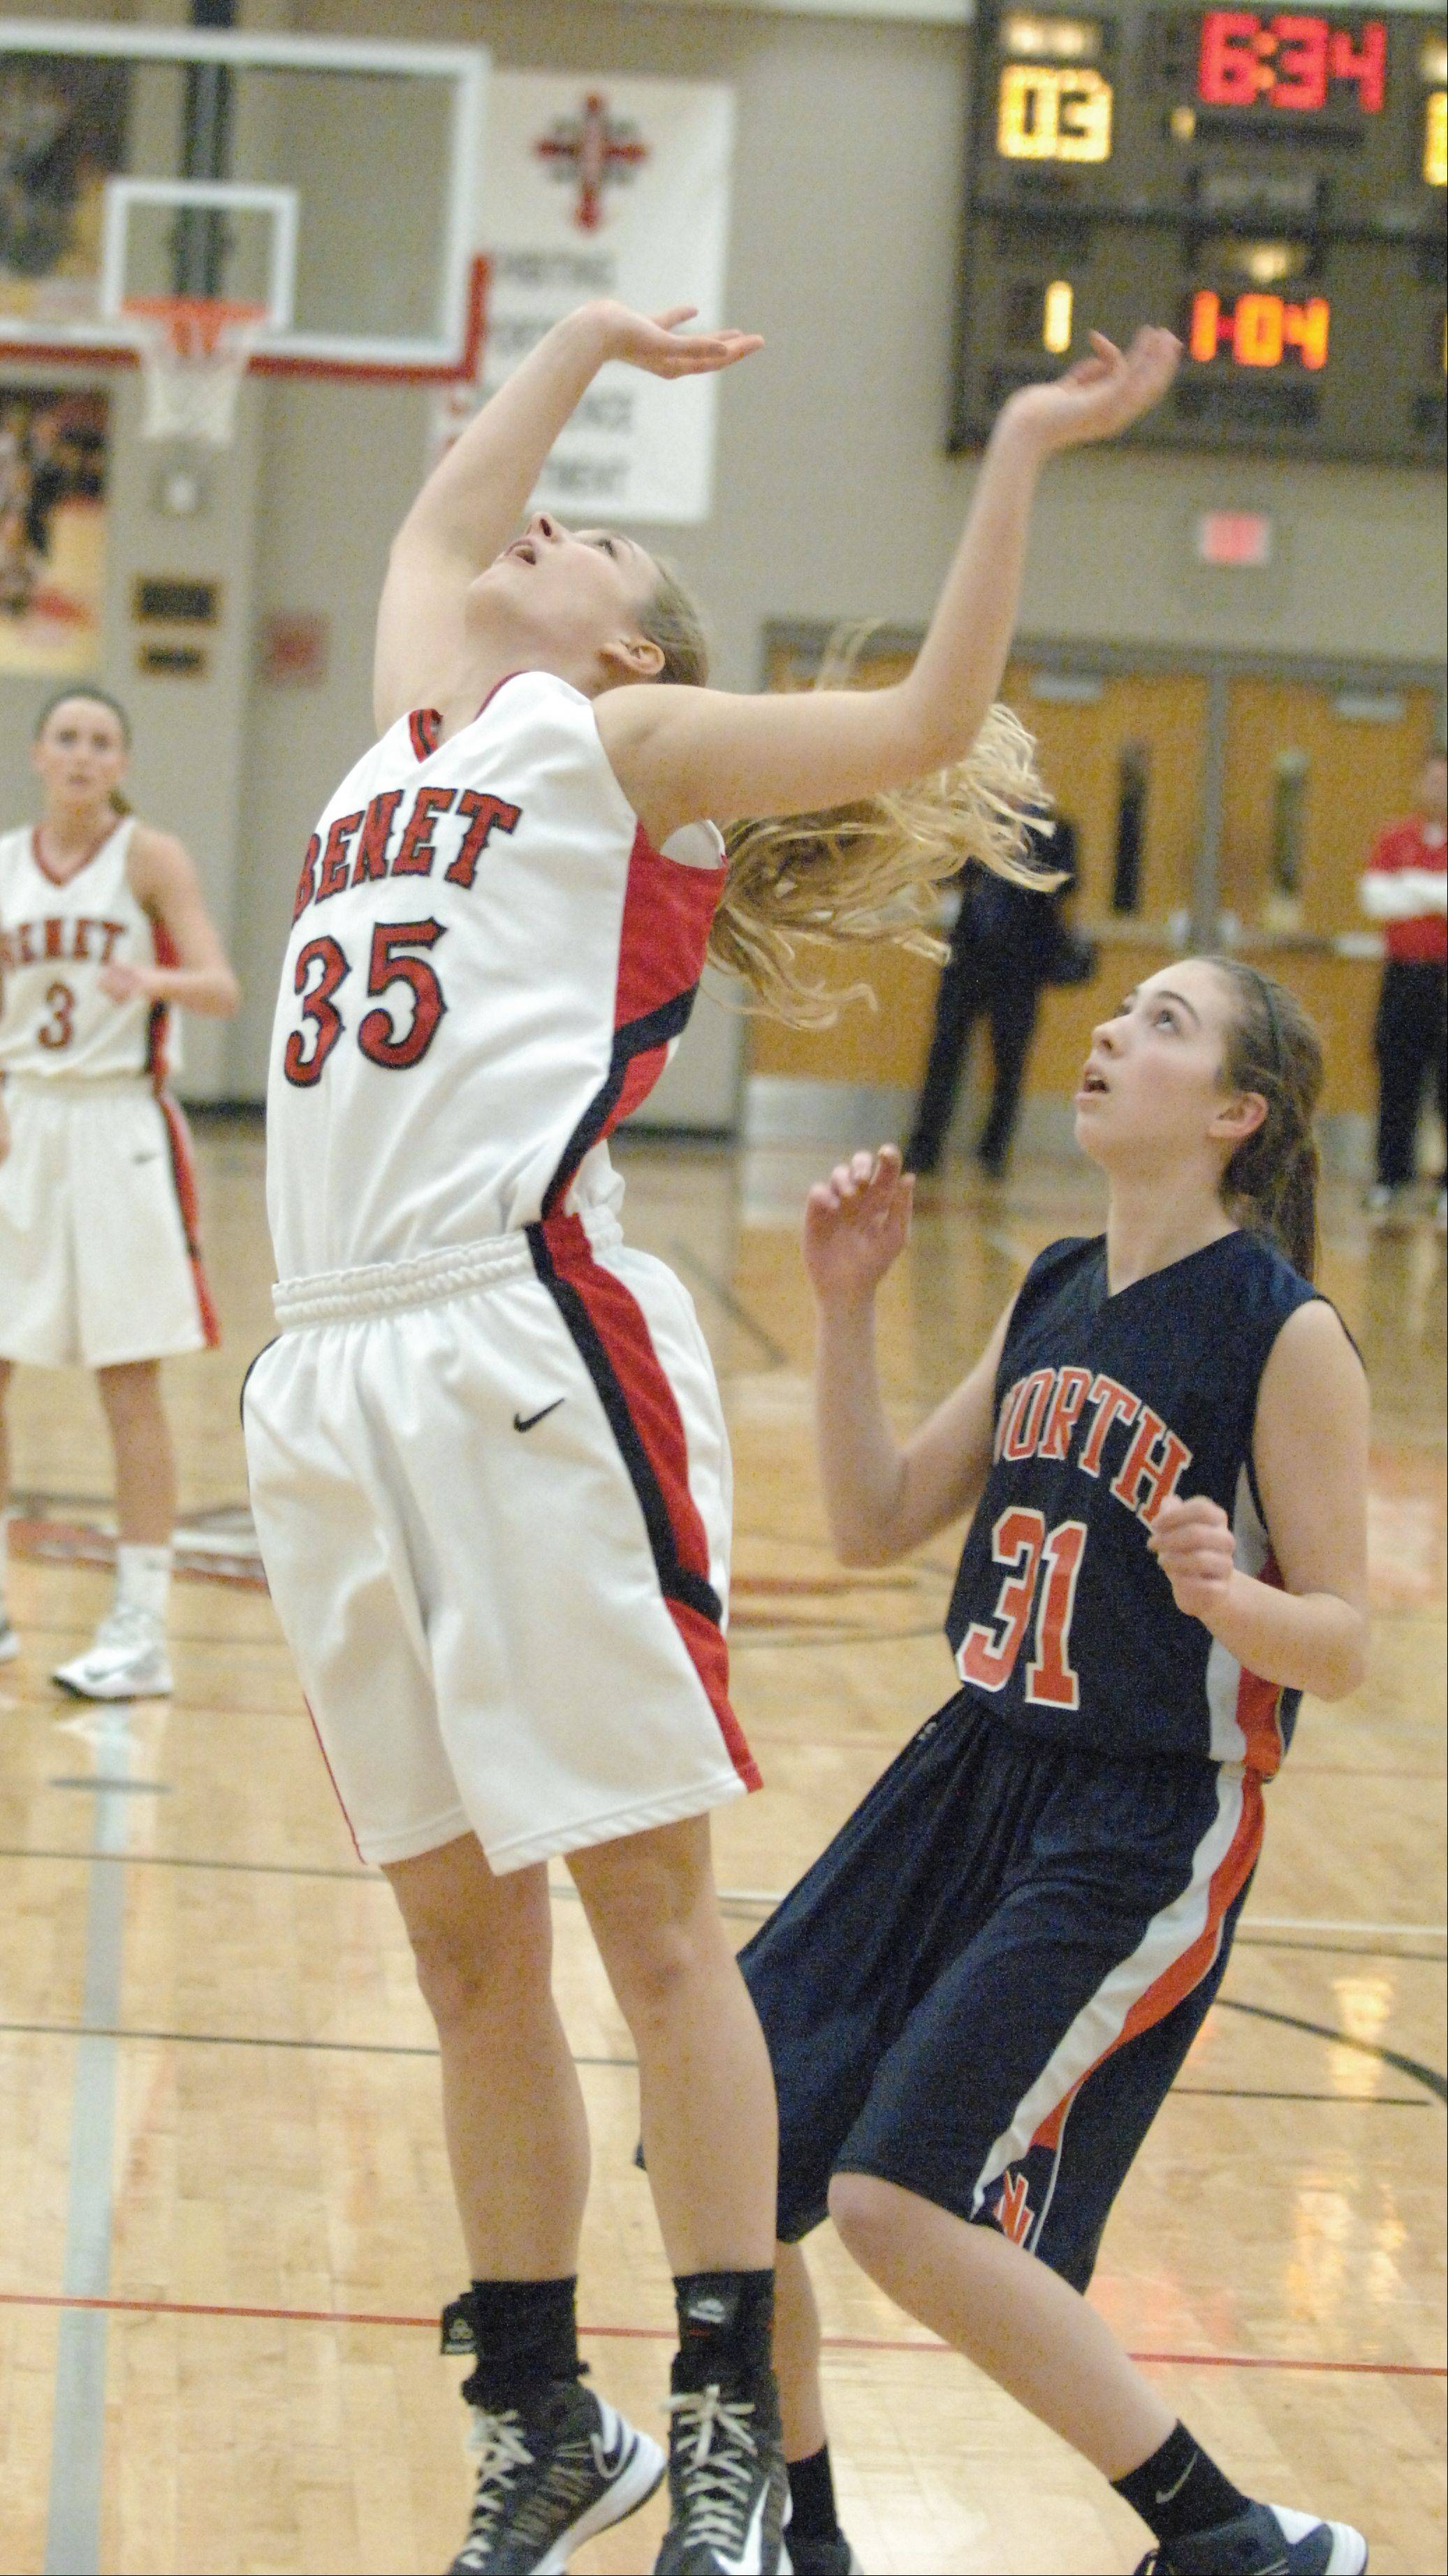 Images from the Benet Academy vs. Naperville North girls 4A regional basketball game on Tuesday, Feb. 12, 2013.